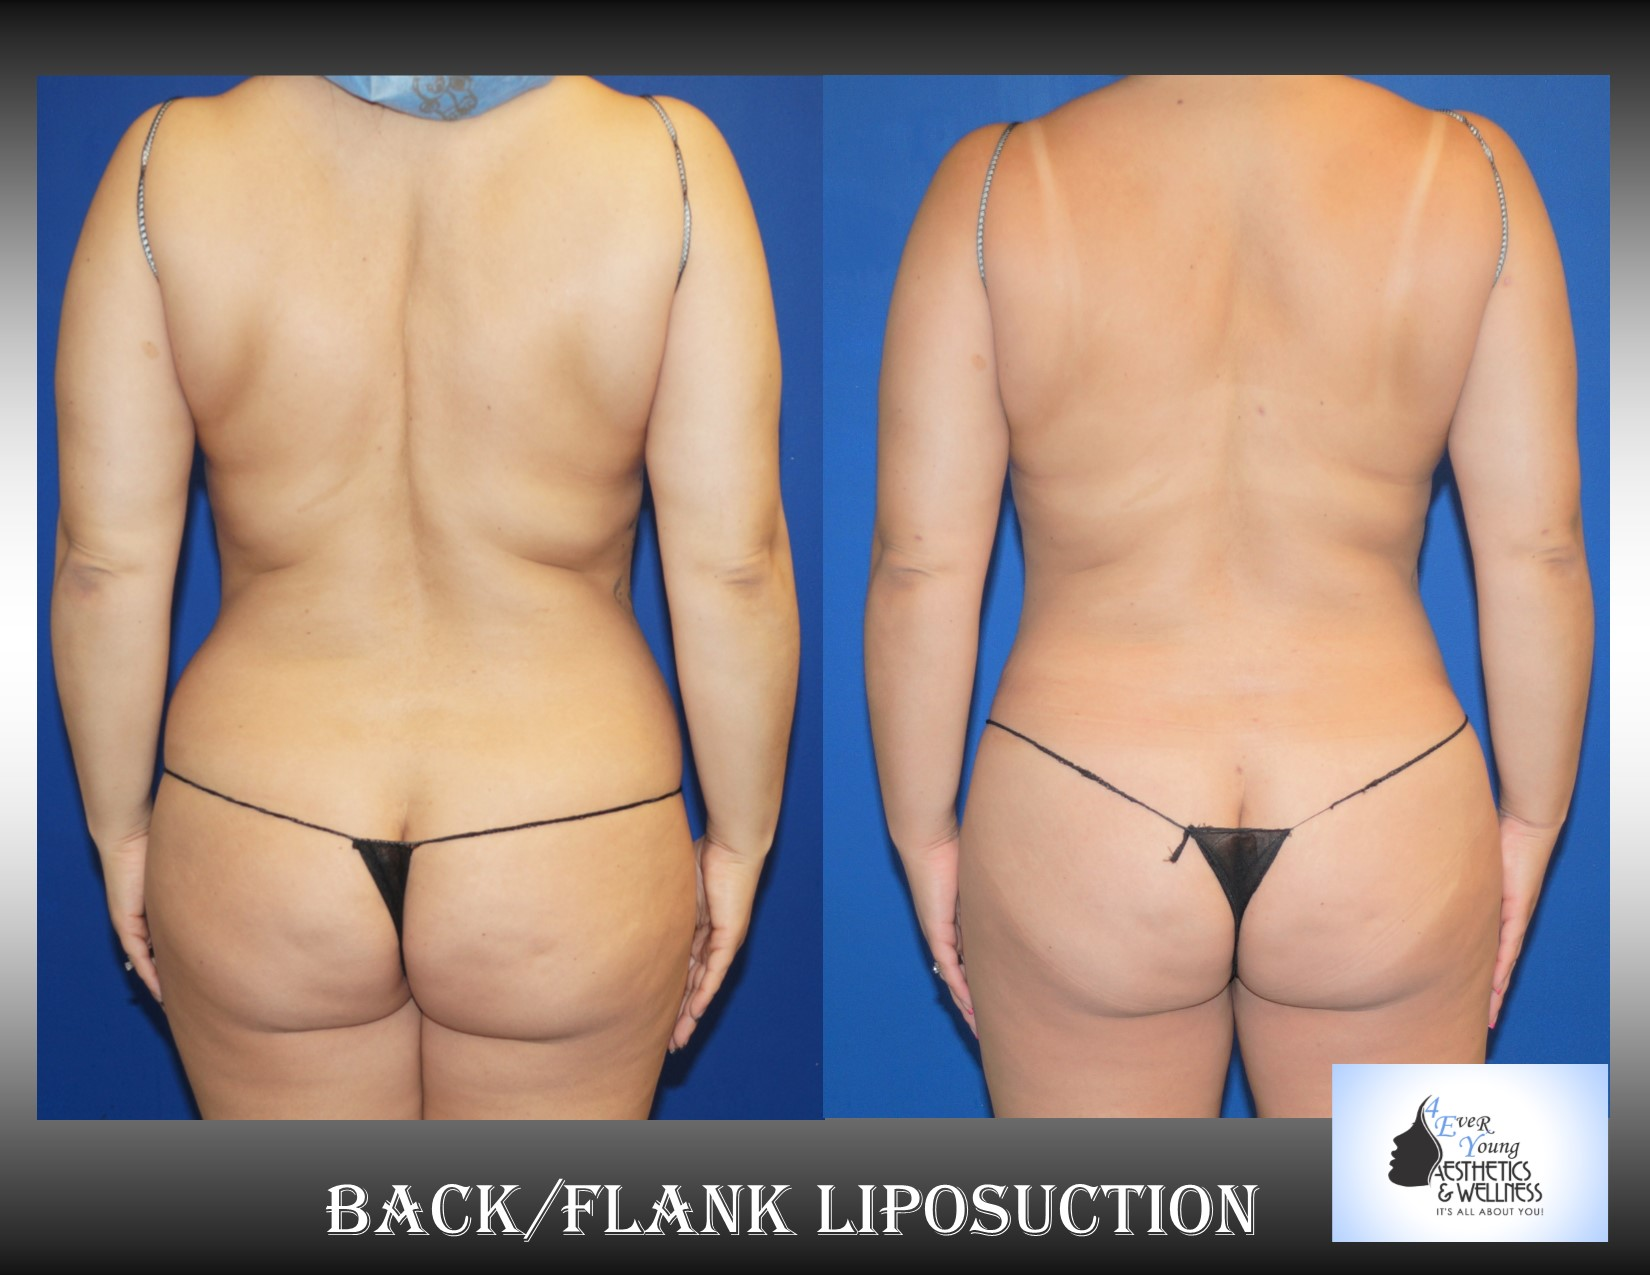 Liposuction atlanta, Liposuction is performed using tumescent anesthesia and traditional liposuction plastic surgery.  We are experts in laser liposuction (smartlipo), vaser liposuction and fat transfer, also known as fat grafting.  Our board-certified cosmetic surgeon is an expert at fat removal with liposuction which is an enhancement surgery and doesn't fall into the scope of practice of a board-certified plastic surgeon who is trained in reconstructive surgery.  Board-certified plastic surgeons with experience in liposuction are certainly qualified to perform the procedure but being trained strictly in plastic surgery is misleading.  We use abdominal liposuction, flank liposuction, back liposuction, arm liposuction, thigh liposuction and ankle liposuction to remove unsightly fat from problem areas with our tumescent liposuction procedures with or without sedation. If you desire we use autologous fat transfer (fat grafting) to use the fat obtained as the most natural dermal filler unlike synthetic fillers (Restylane, Juvederm, Sculptra, Radiesse, Belotero, Perlane) to improve fine lines and wrinkles of the face, hand rejuvenation with fat, fat transfer to breast, Brazilian Butt Lift (Butt Augmentation), liposculpture, lip augmentation with fat.  Fat transfer to the breast can be a great alternative to breast augmentation, saline implants, silicone implants, breast augmentation with mastopexy or just to improve volume in the upper pole of the breast.